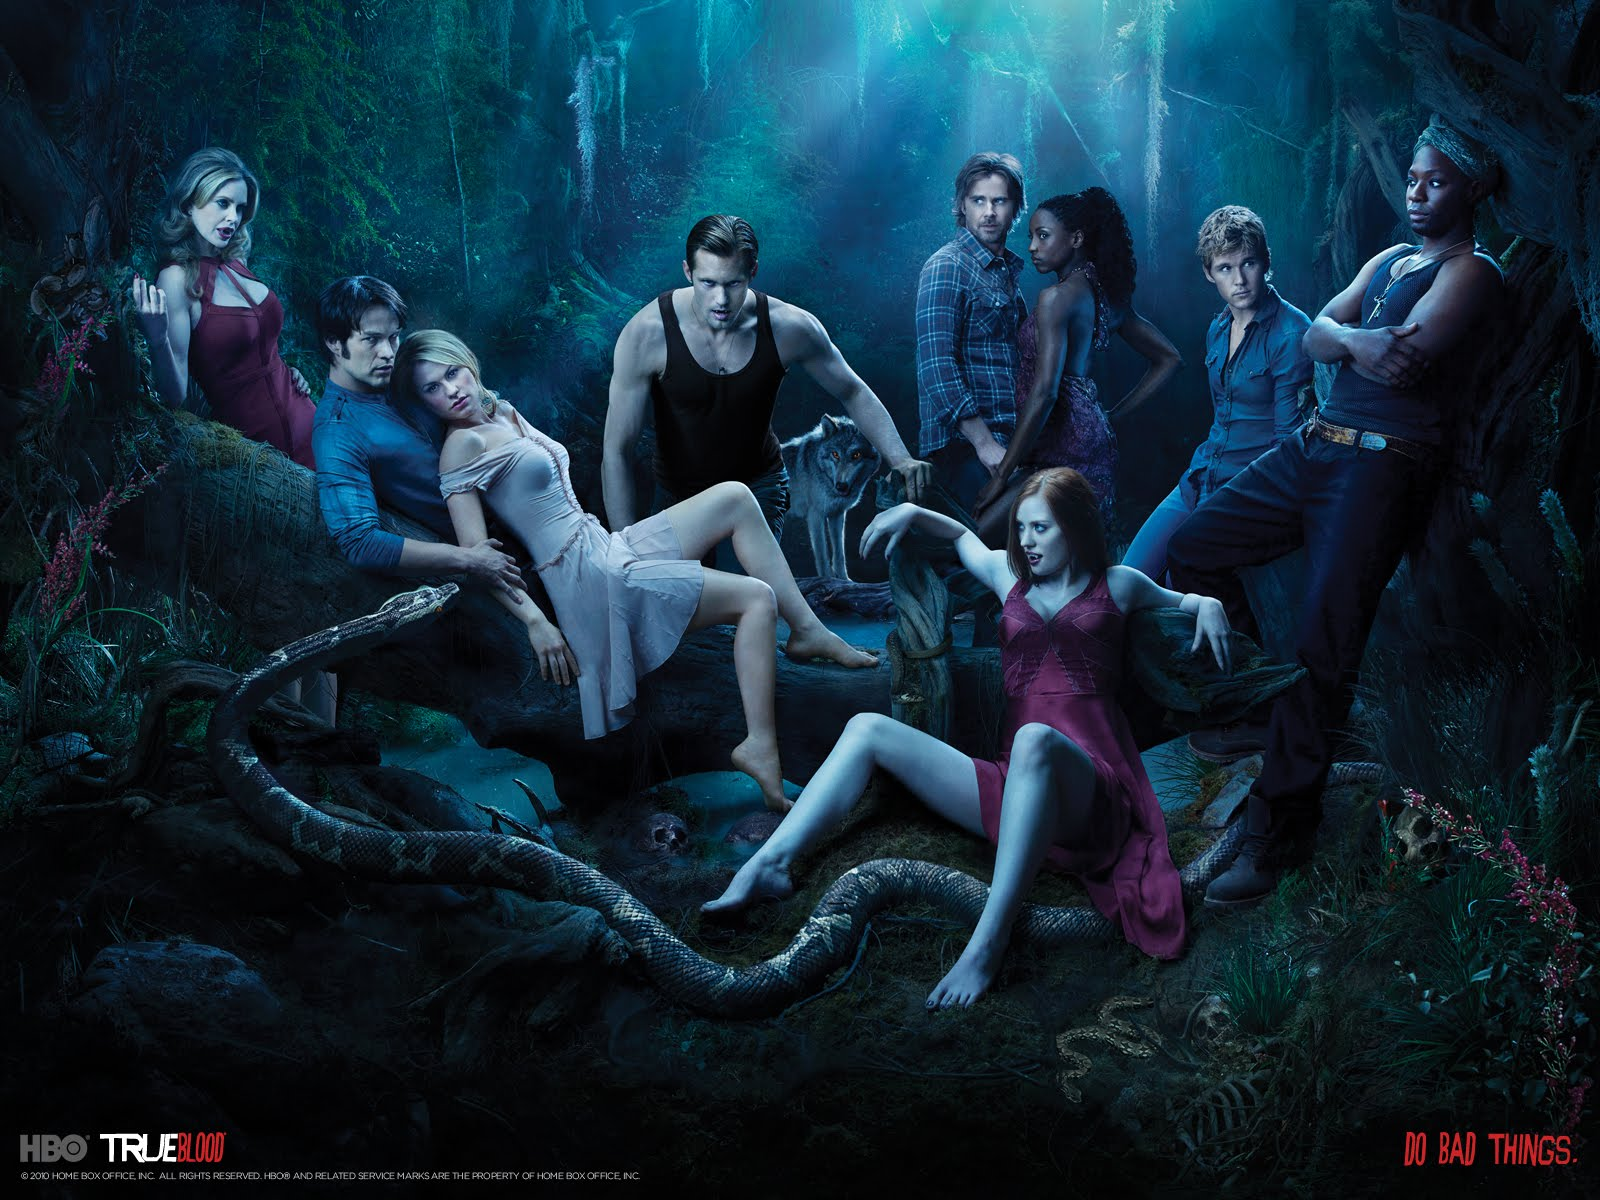 http://1.bp.blogspot.com/_oCEA7DBXyqs/TG_ZIRFecuI/AAAAAAAADvM/xwy4n1CTavA/s1600/True-Blood-Cast-Wallpaper.jpg